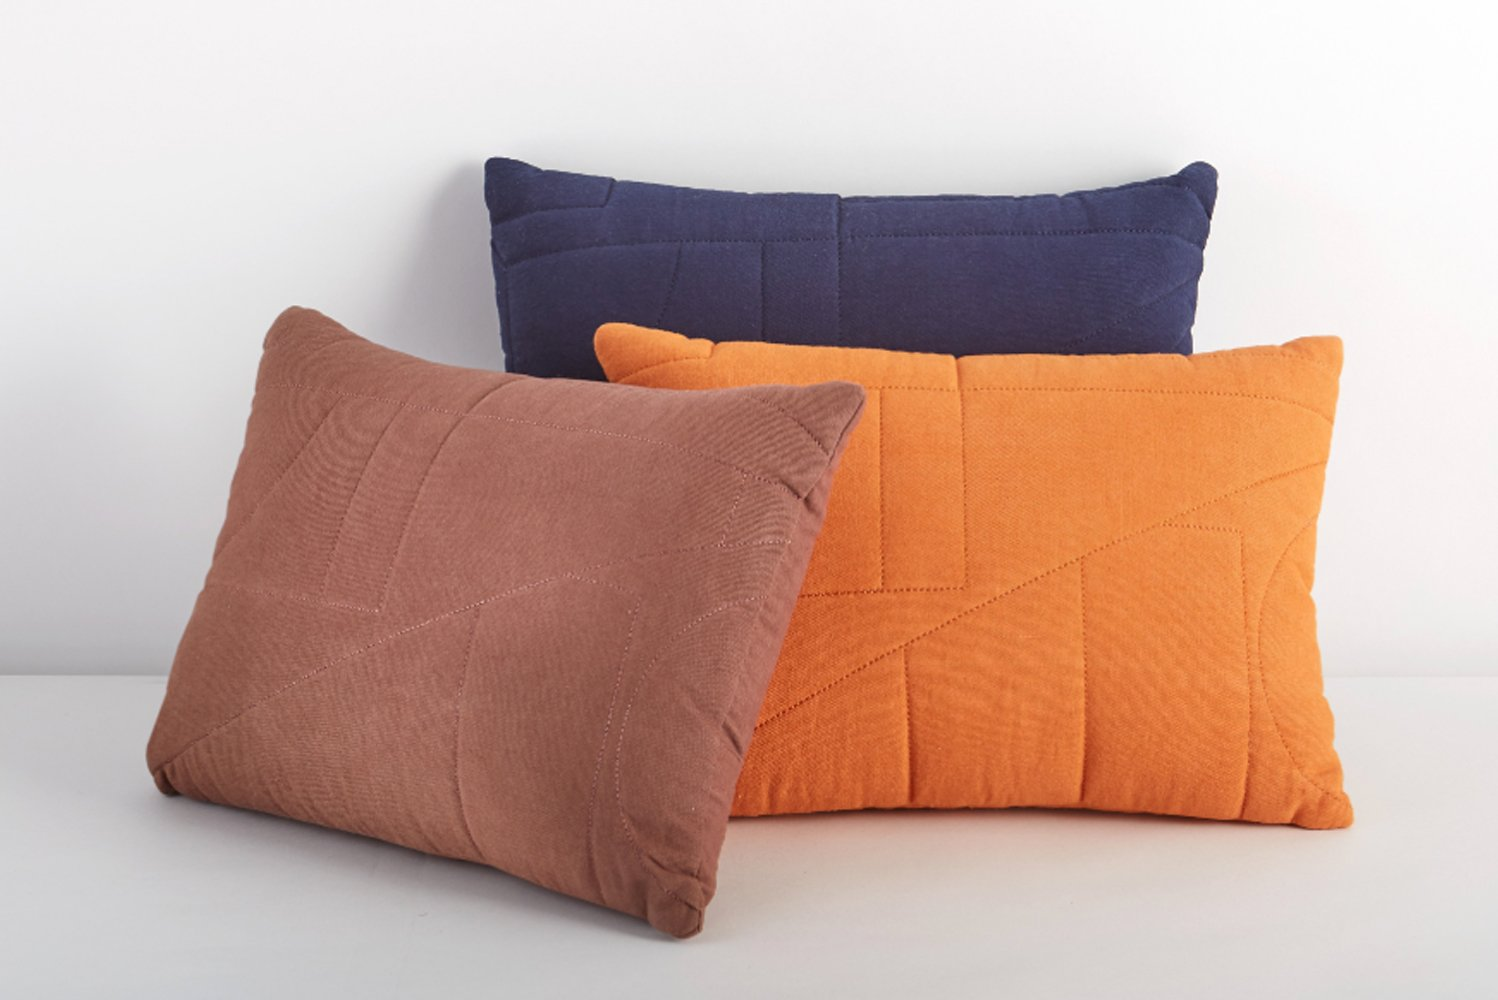 The Lennox pillow is made from a durable, woven cotton duck fabric.